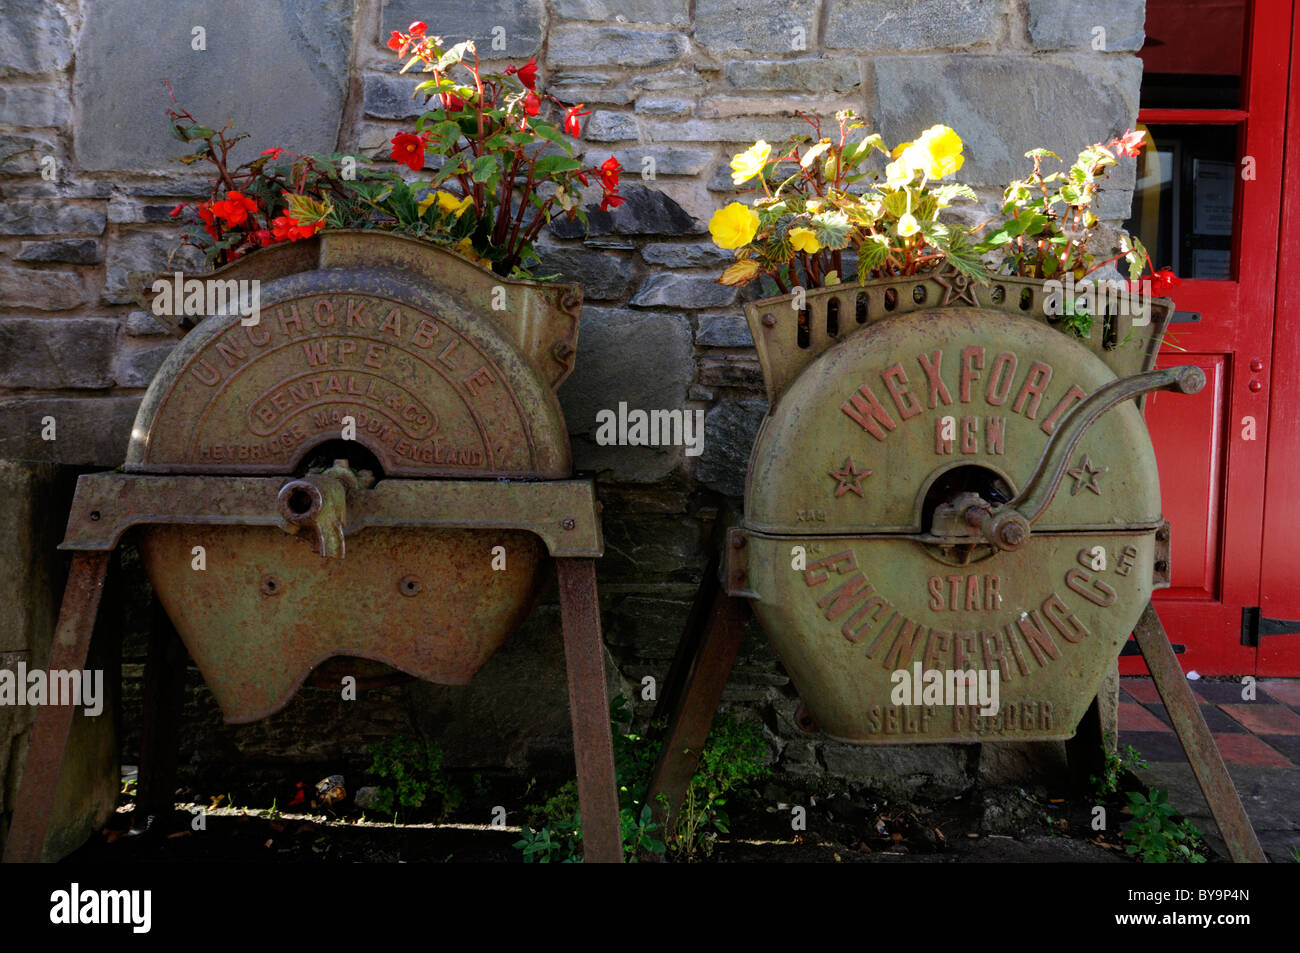 self feeder horticulture agricultural implement vintage reuse reused recycle urban gardening planter flower bed - Stock Image